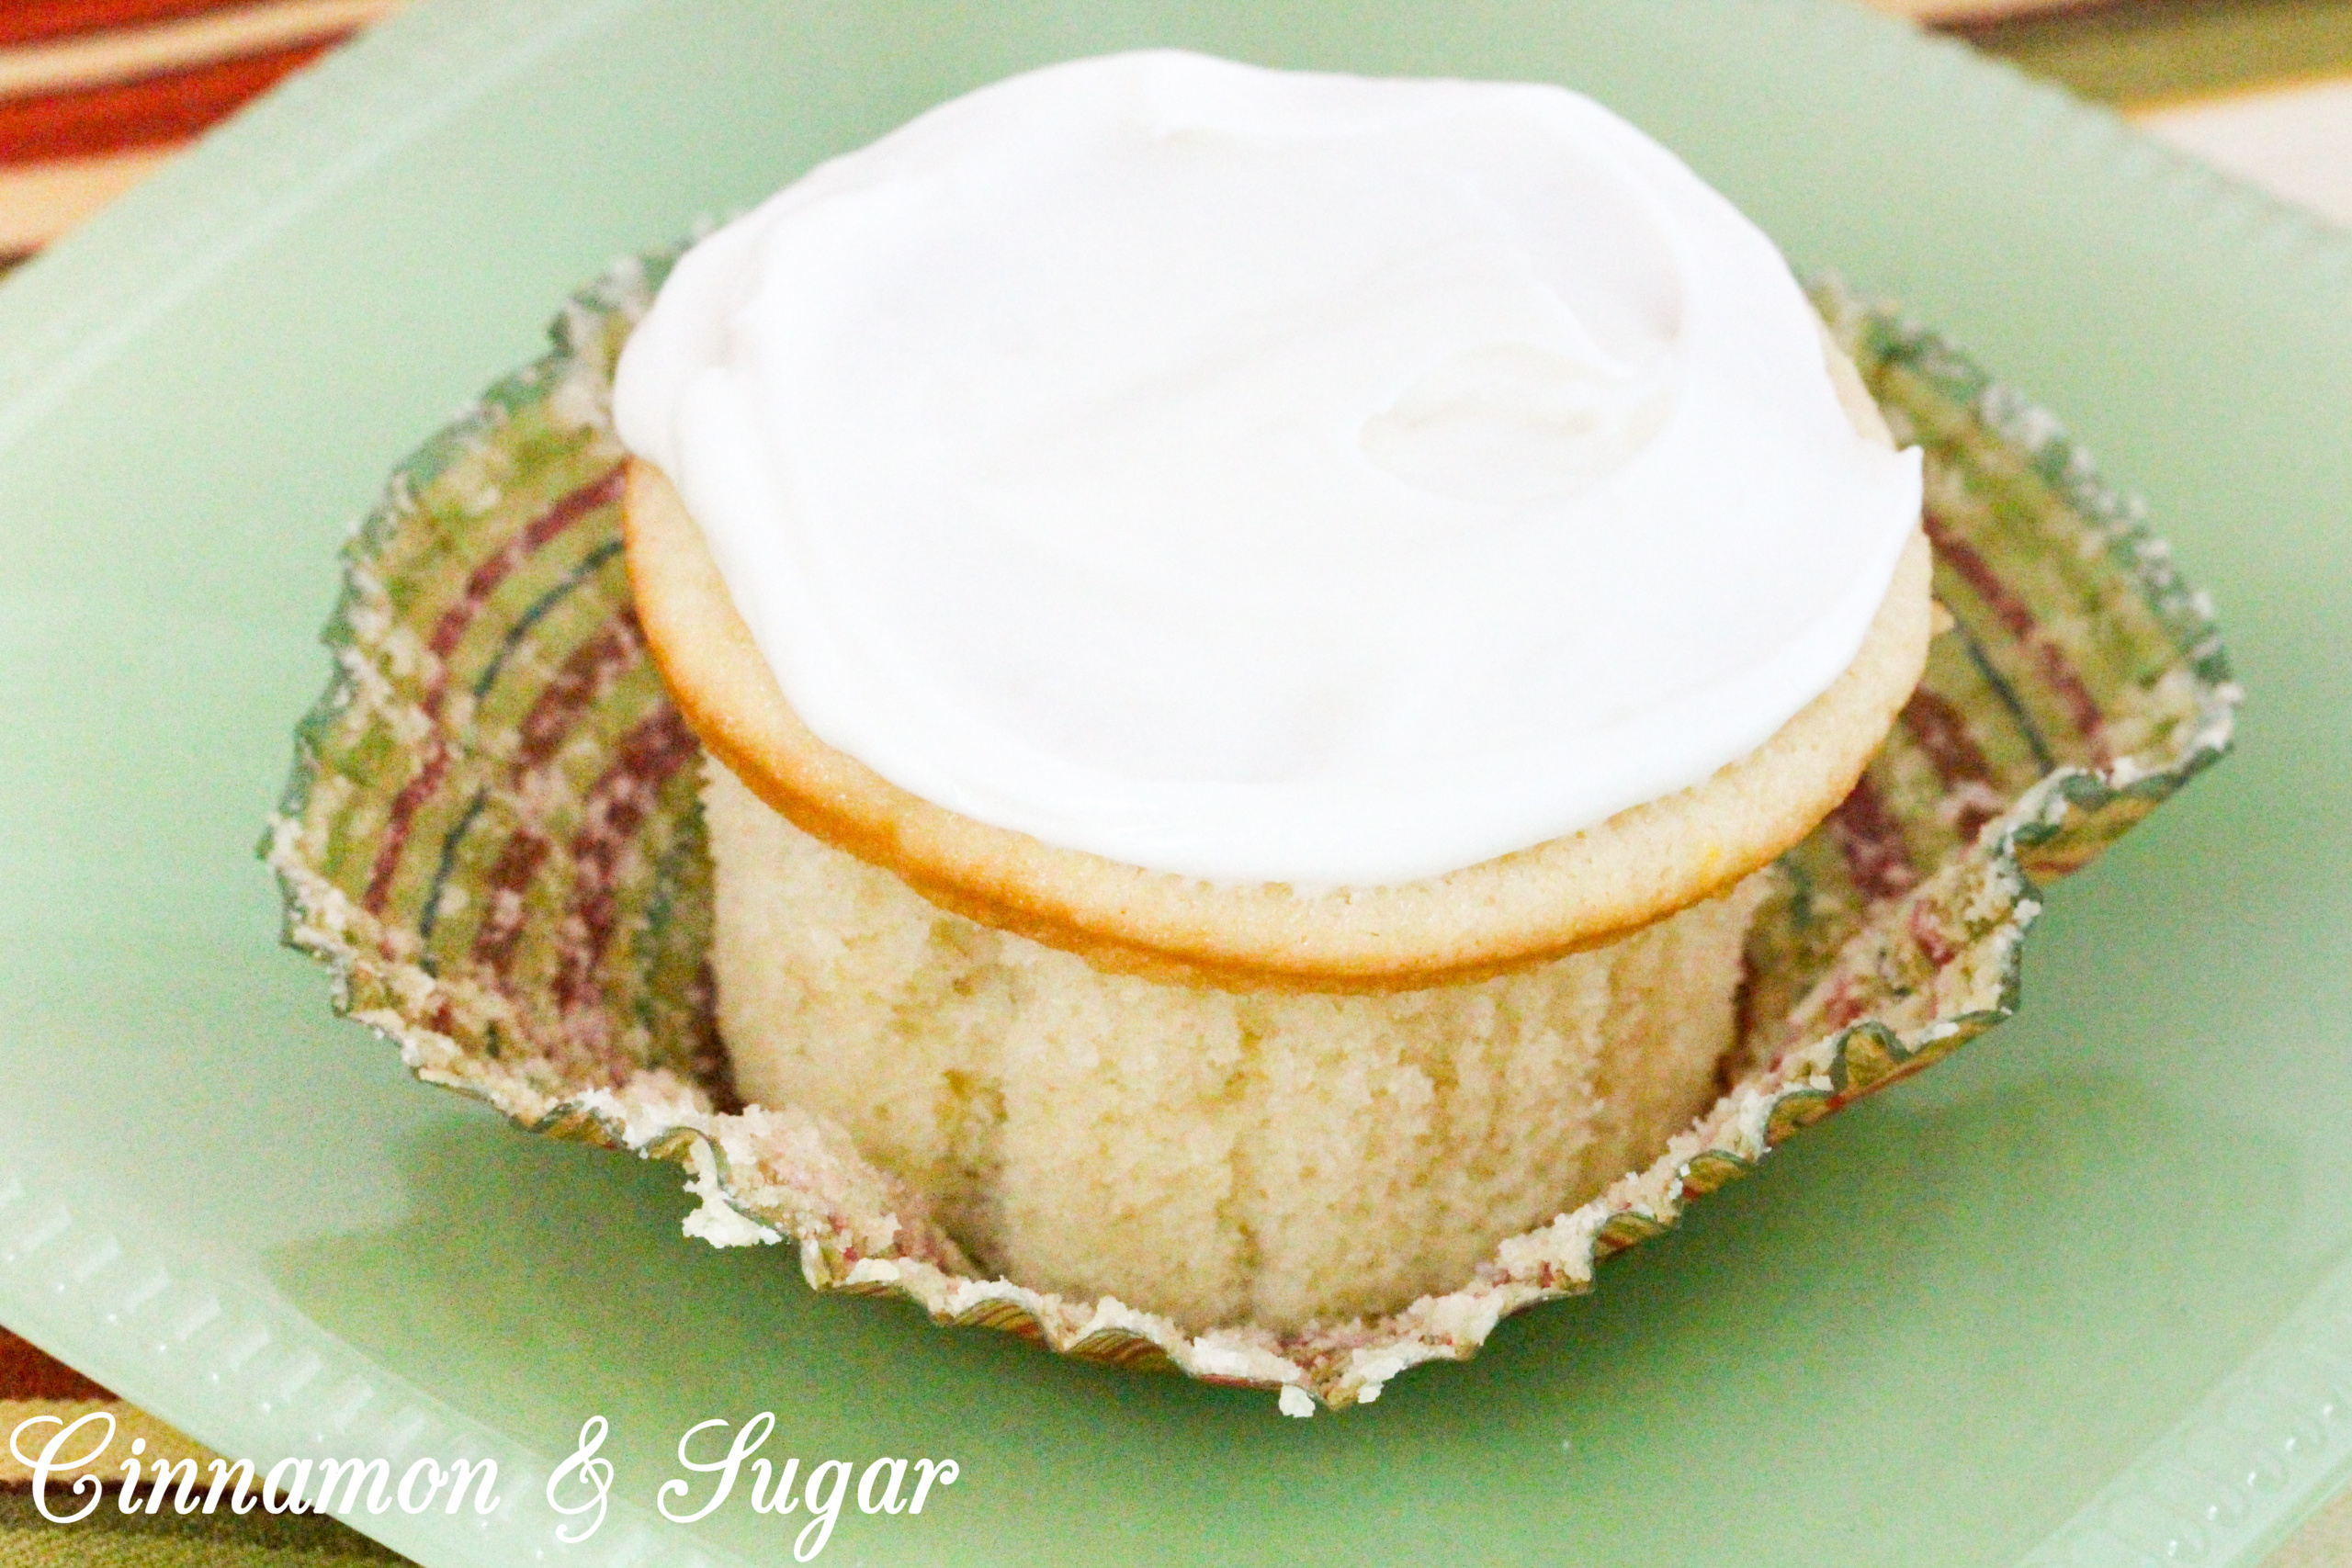 Lemony cream cheese frosting tops little lemon cakes that are super moist thanks to a generous dollop of sour cream. Perfect for afternoon tea or brunch! Recipe shared with permission granted by Maureen Klovers, author of MURDER IN THE MOONSHINE.